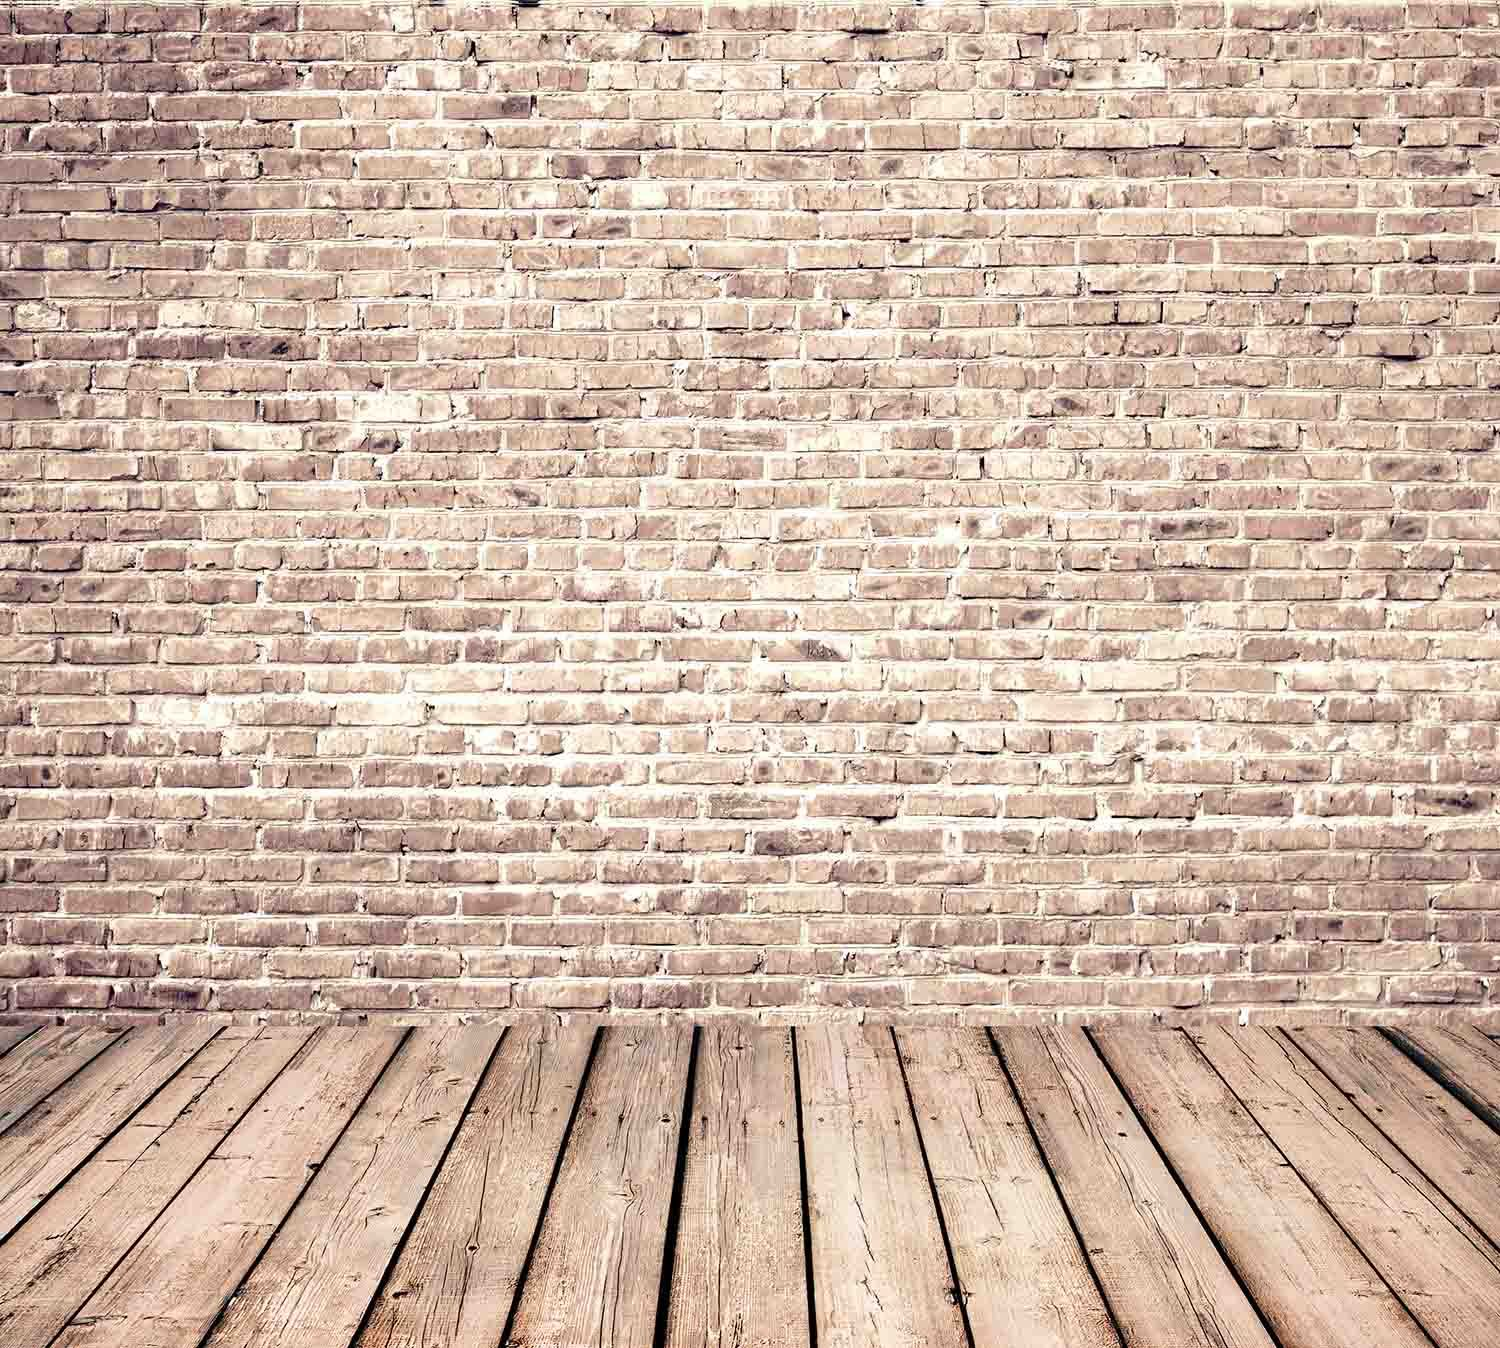 Senior Red Brick Wall Texture With Old Wood Floor Backdrop